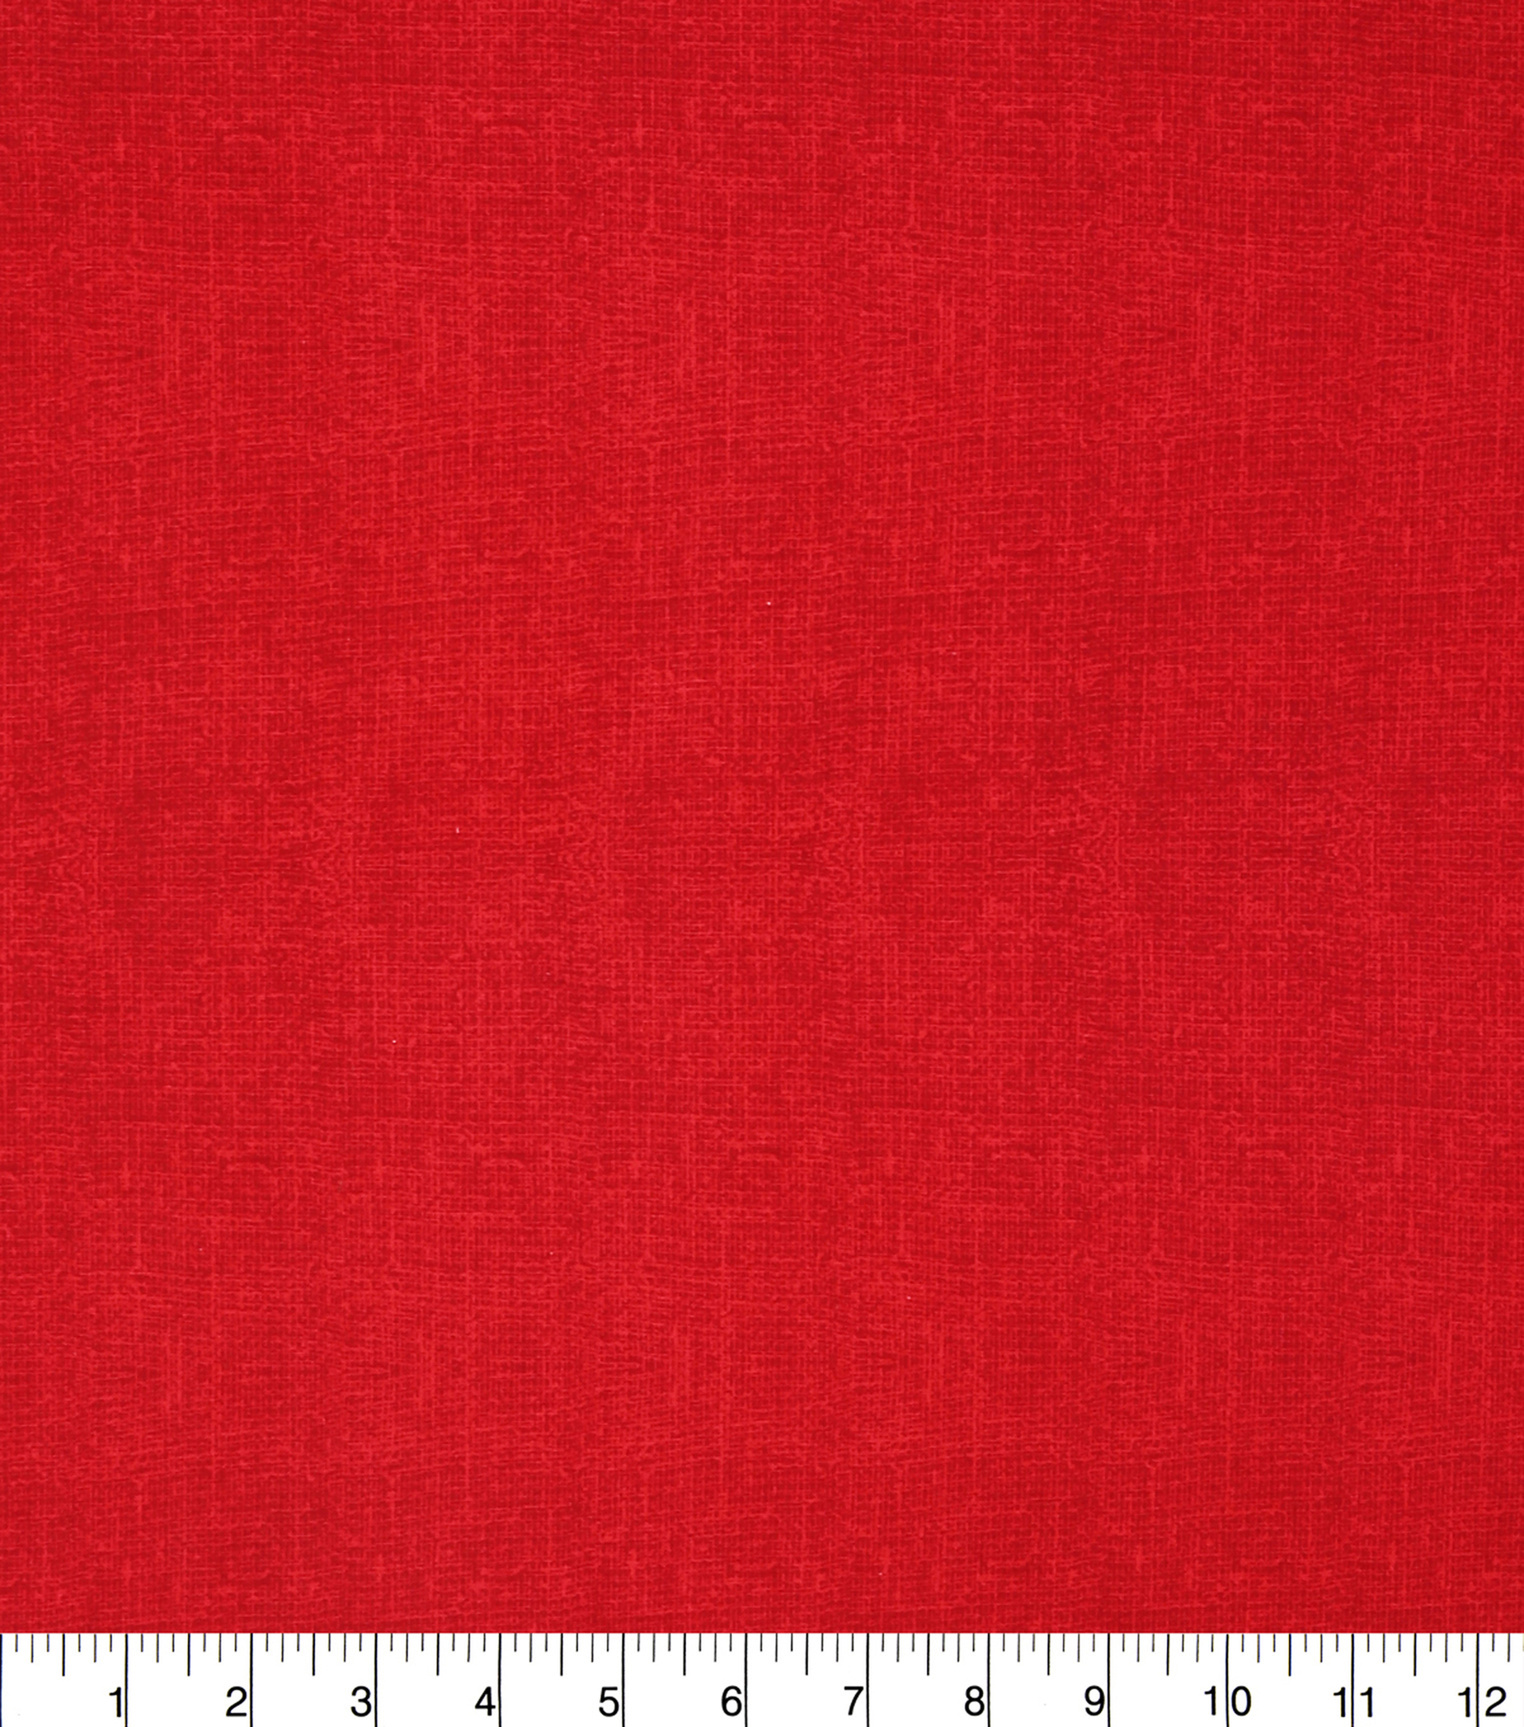 Keepsake Calico Cotton Fabric -Red